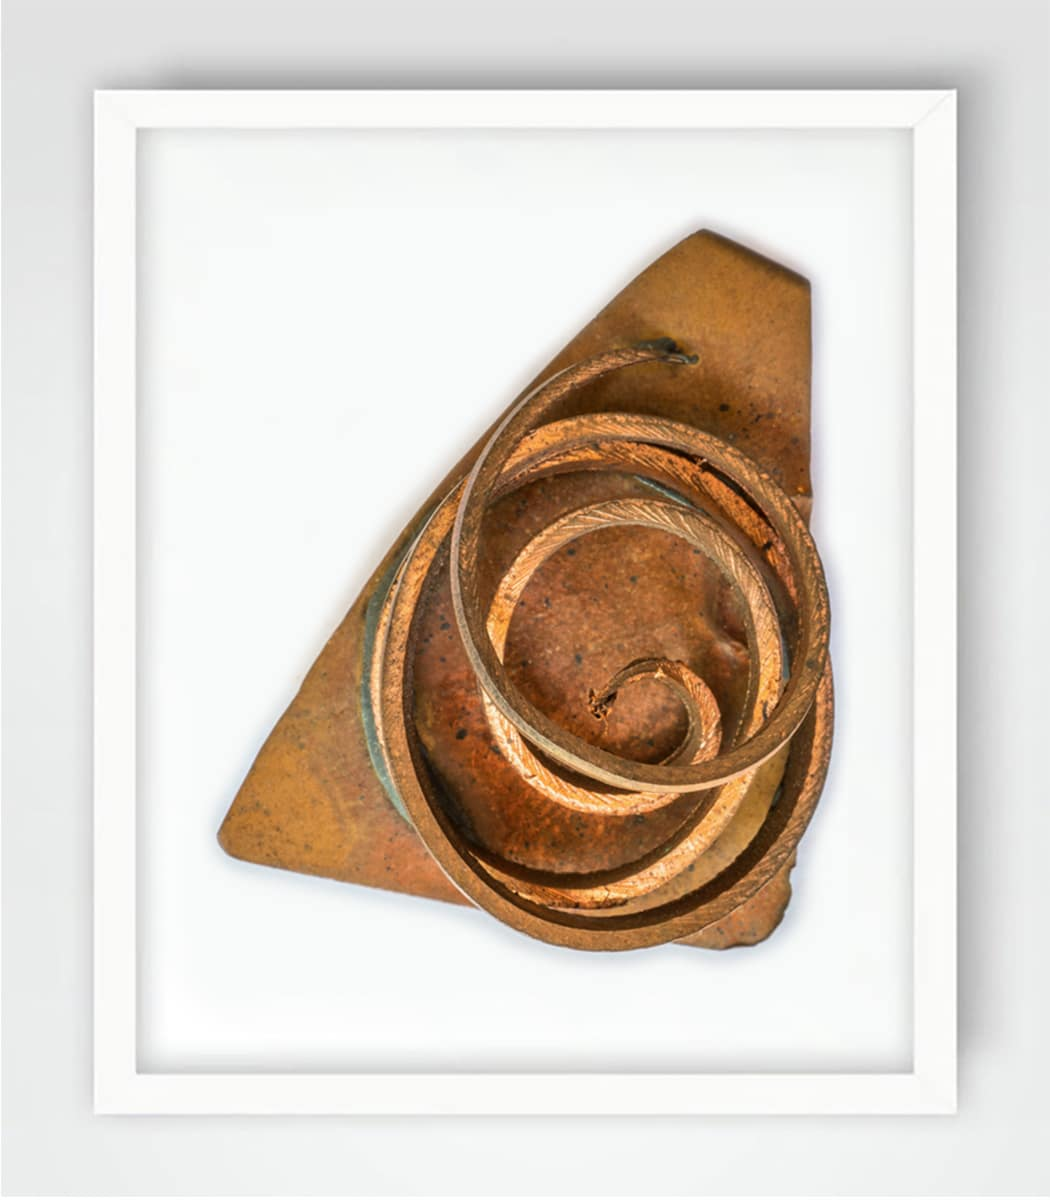 swirl-and-copper-framed-by-gregory-beylerian